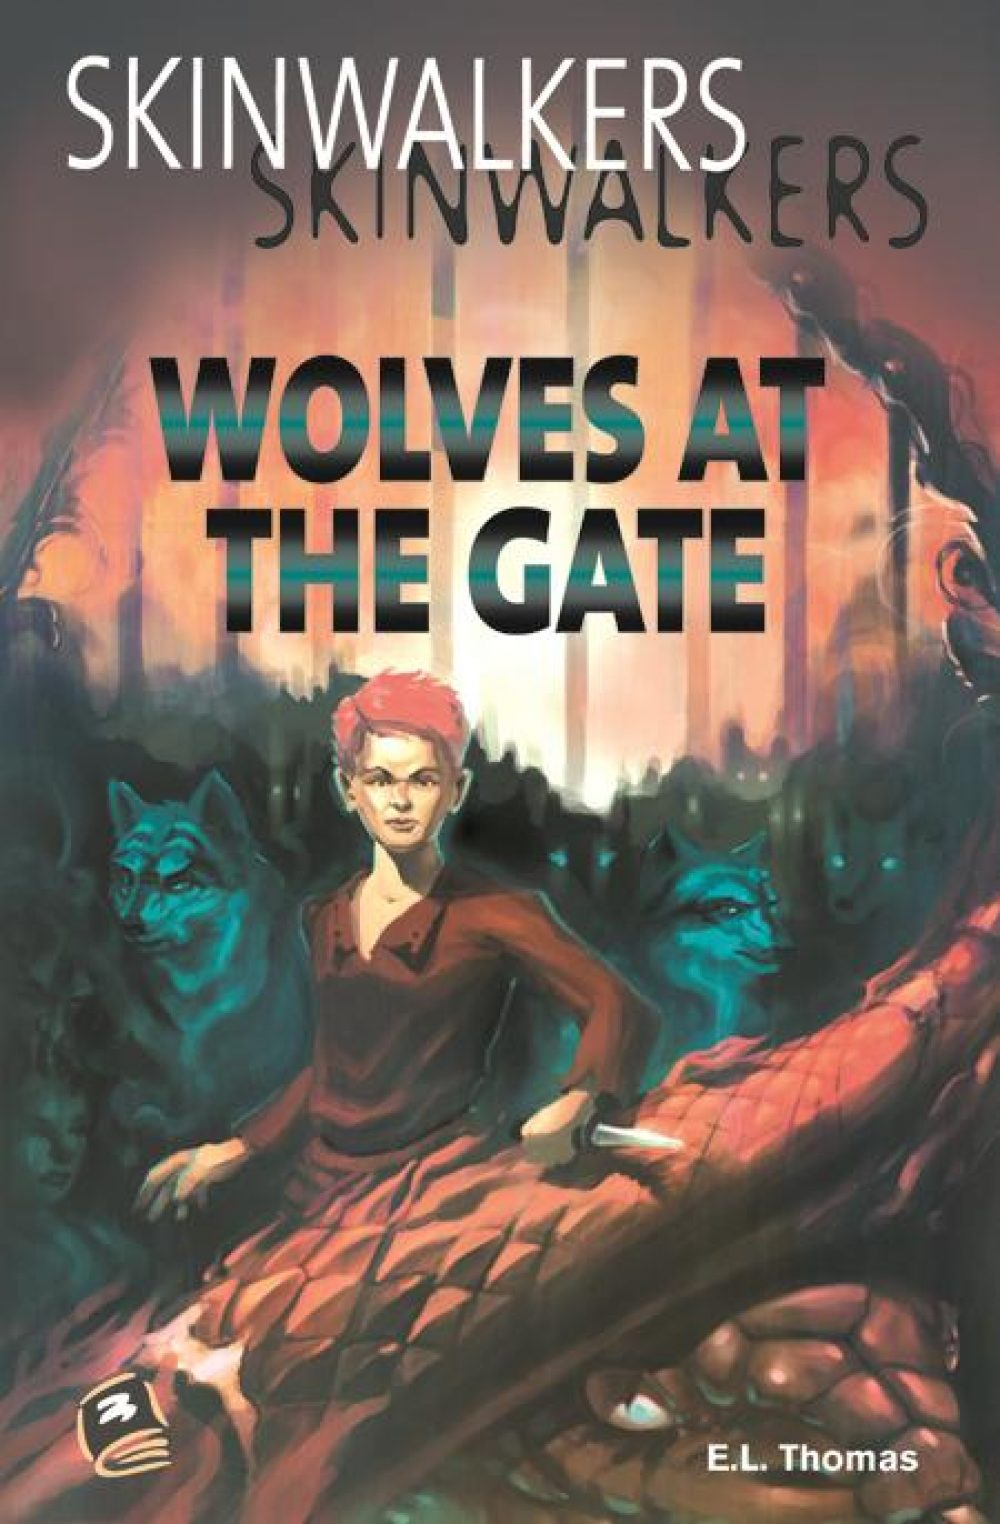 Skinwalkers: Wolves at the Gate